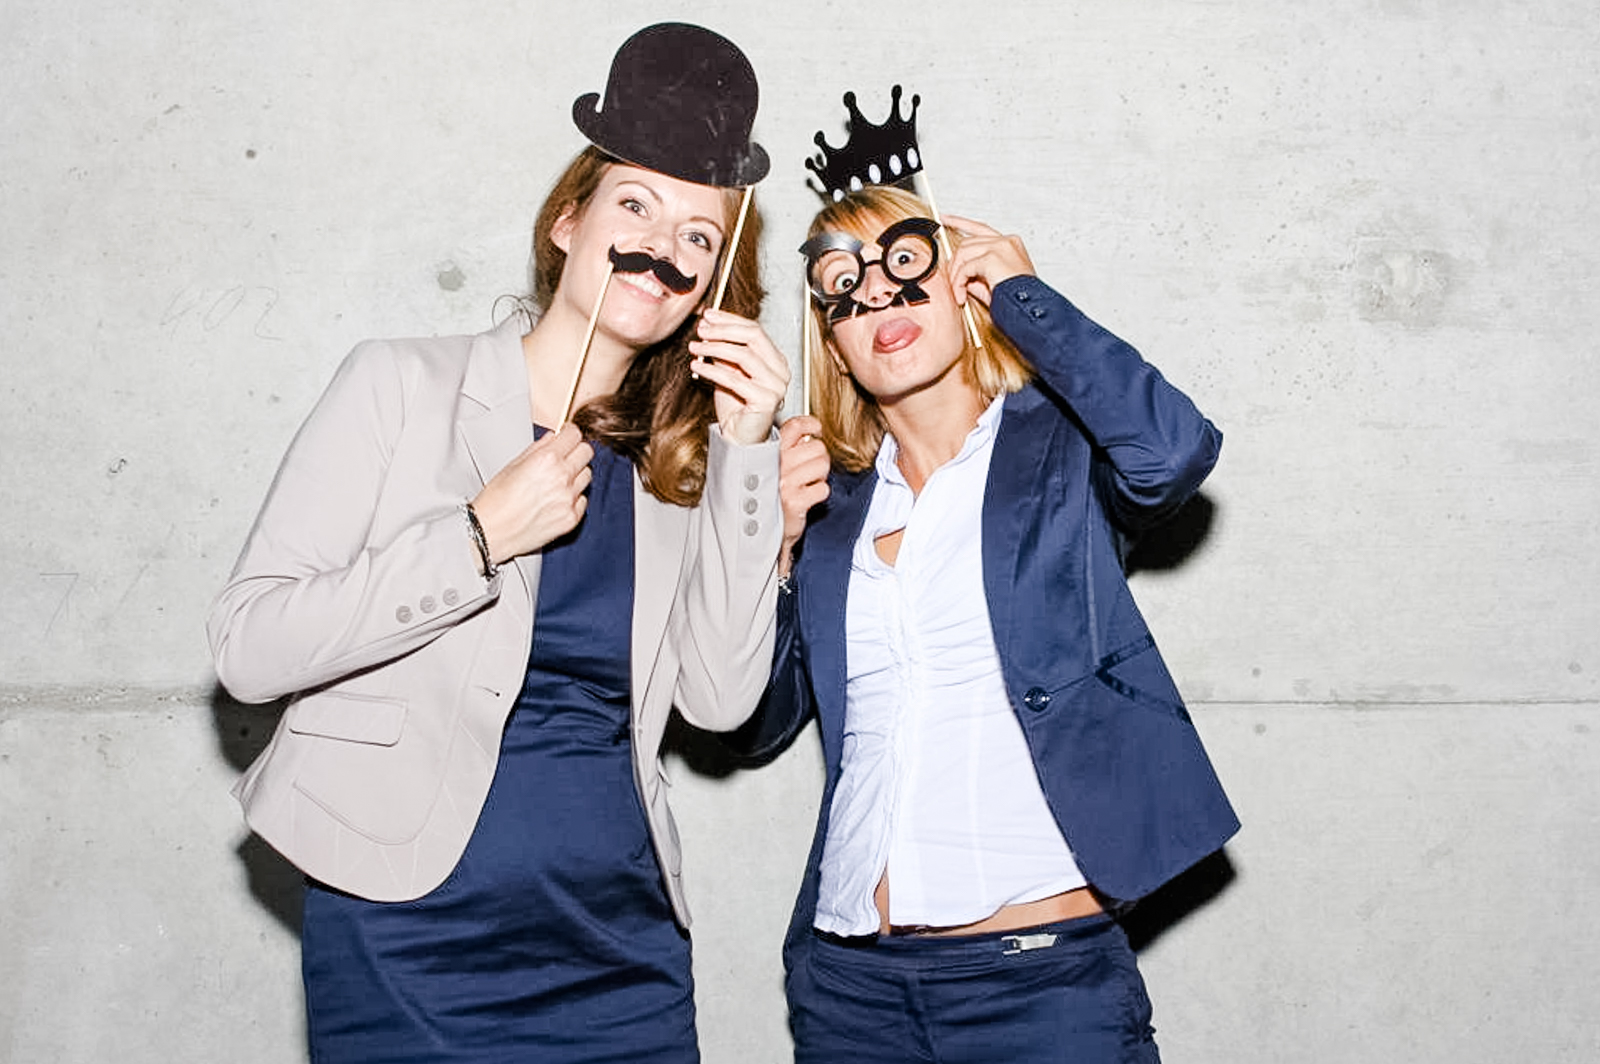 Monstergraphie_Photobooth_Zeche_Zollverein-24.jpg?fit=1600%2C1064